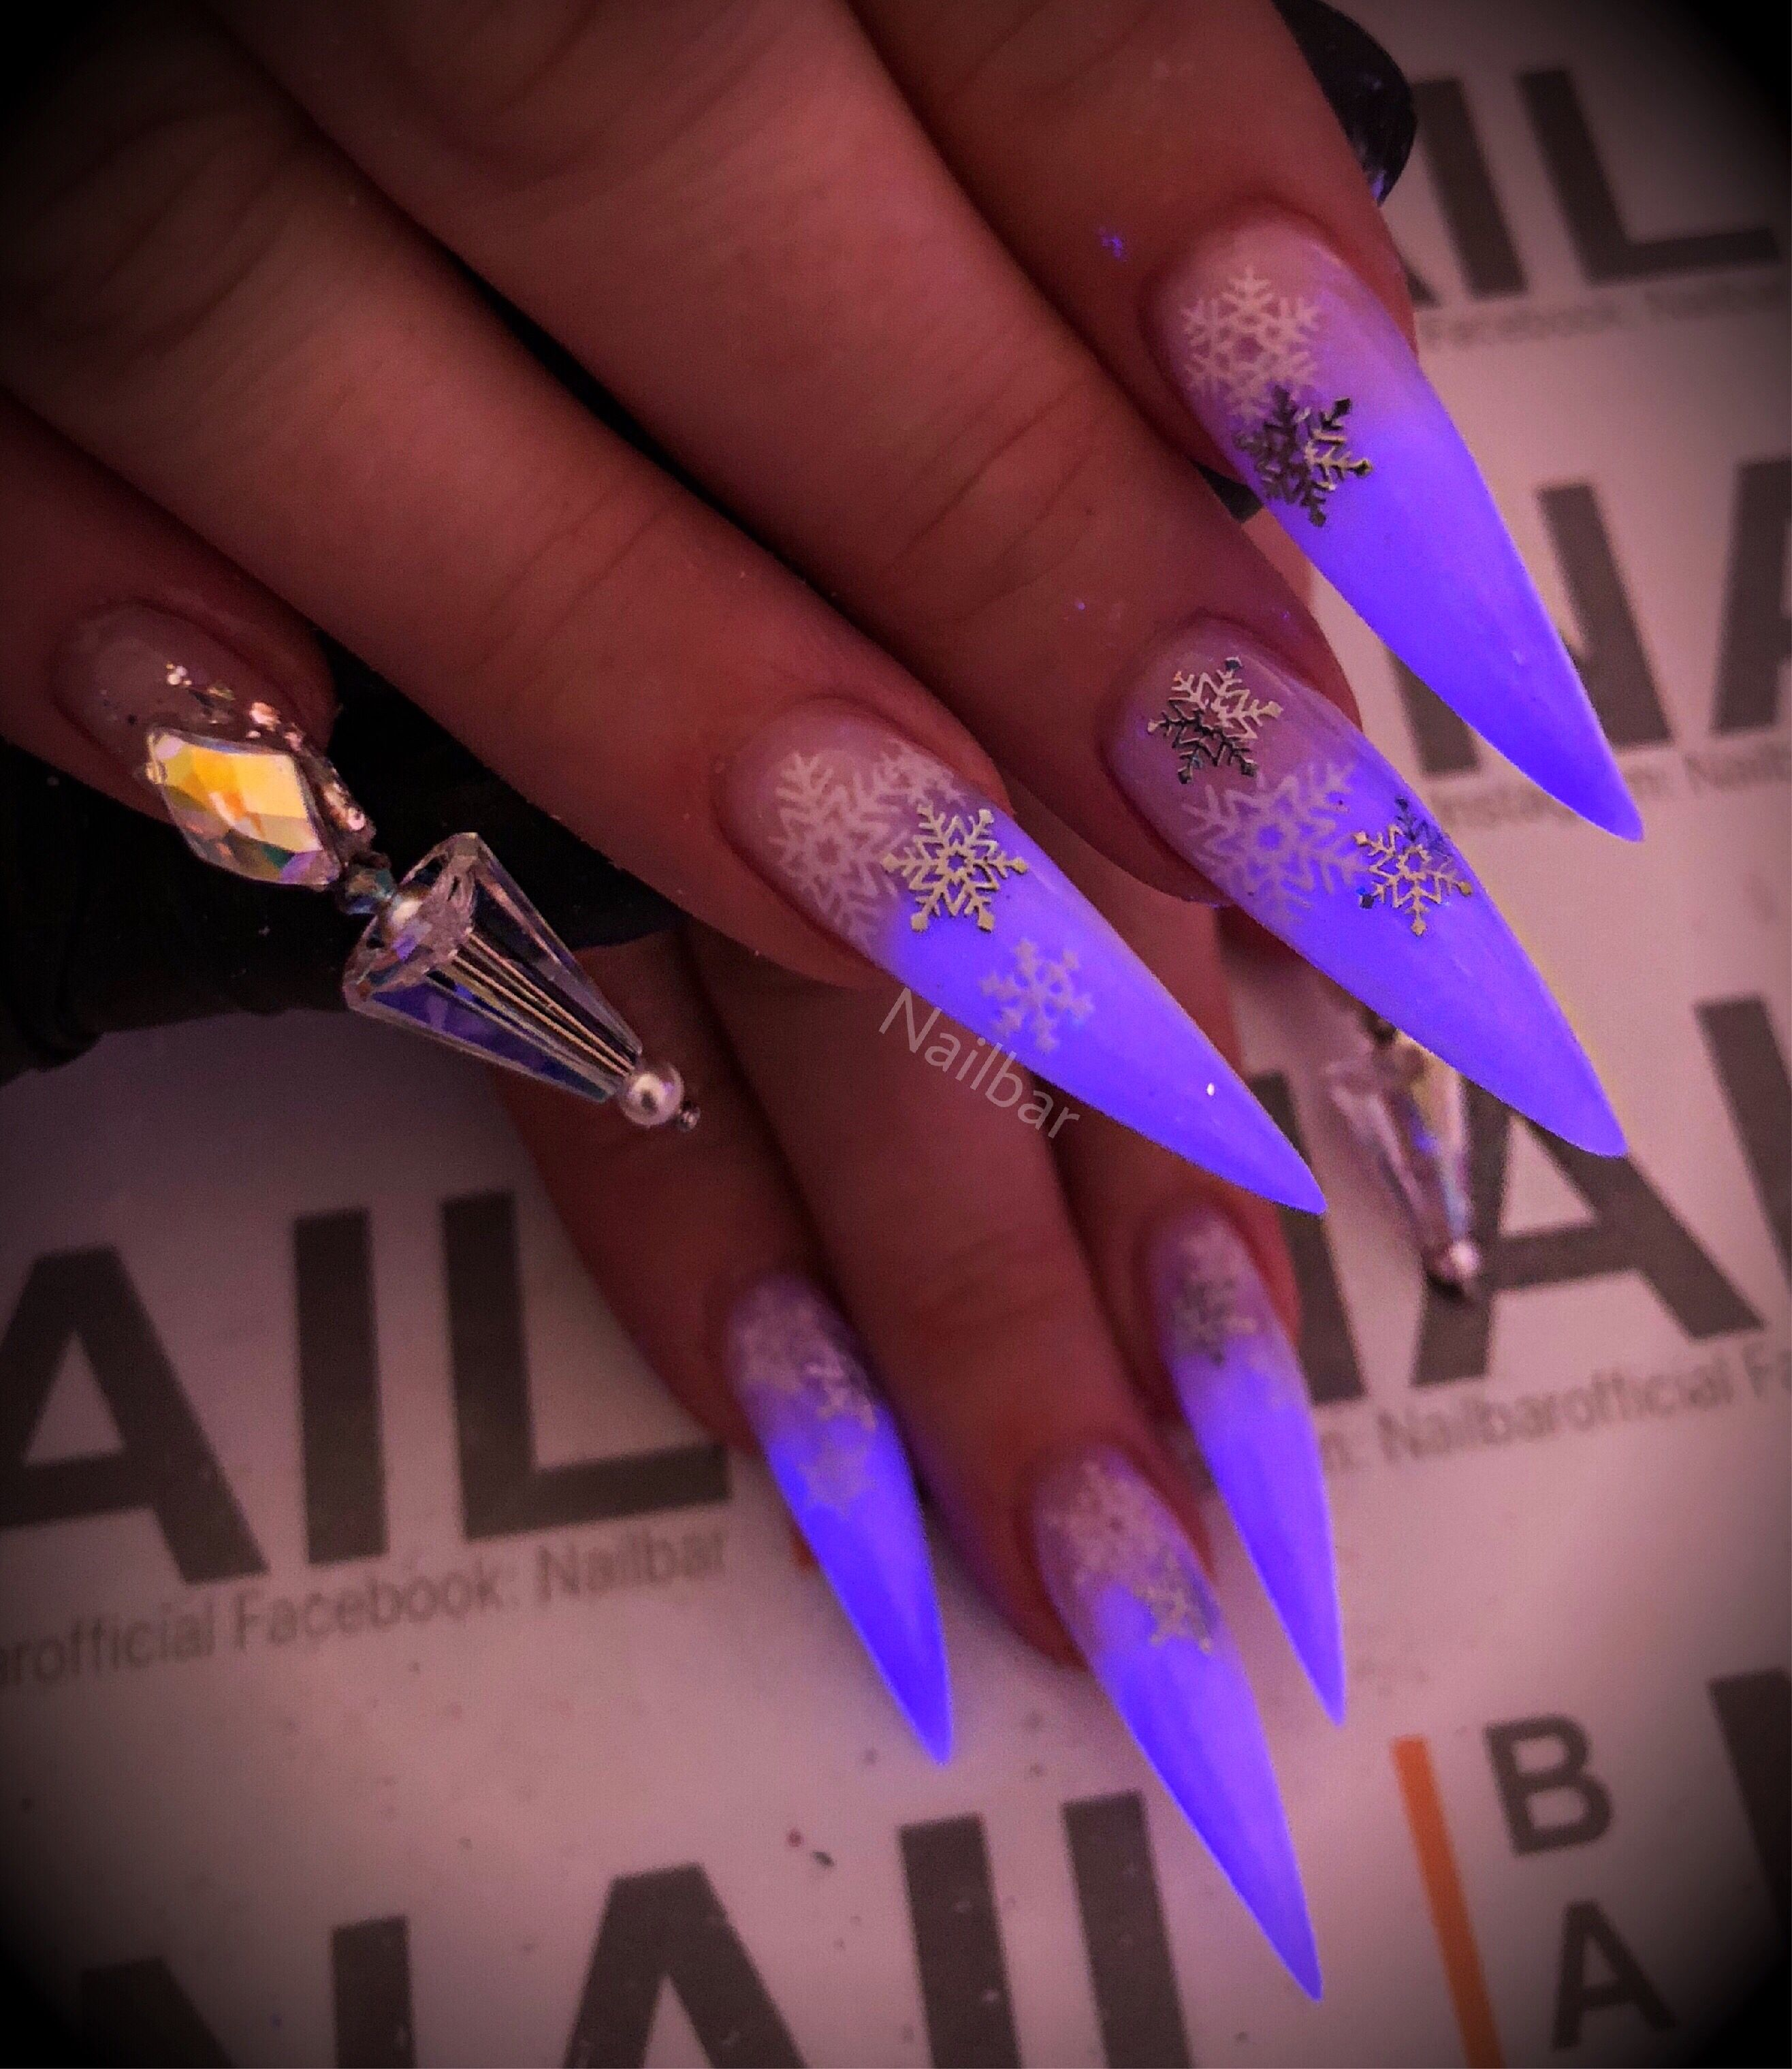 Piggieluv Freehand Stairway To Heaven Nail Art: Pin By Marissa Solis On Nailart